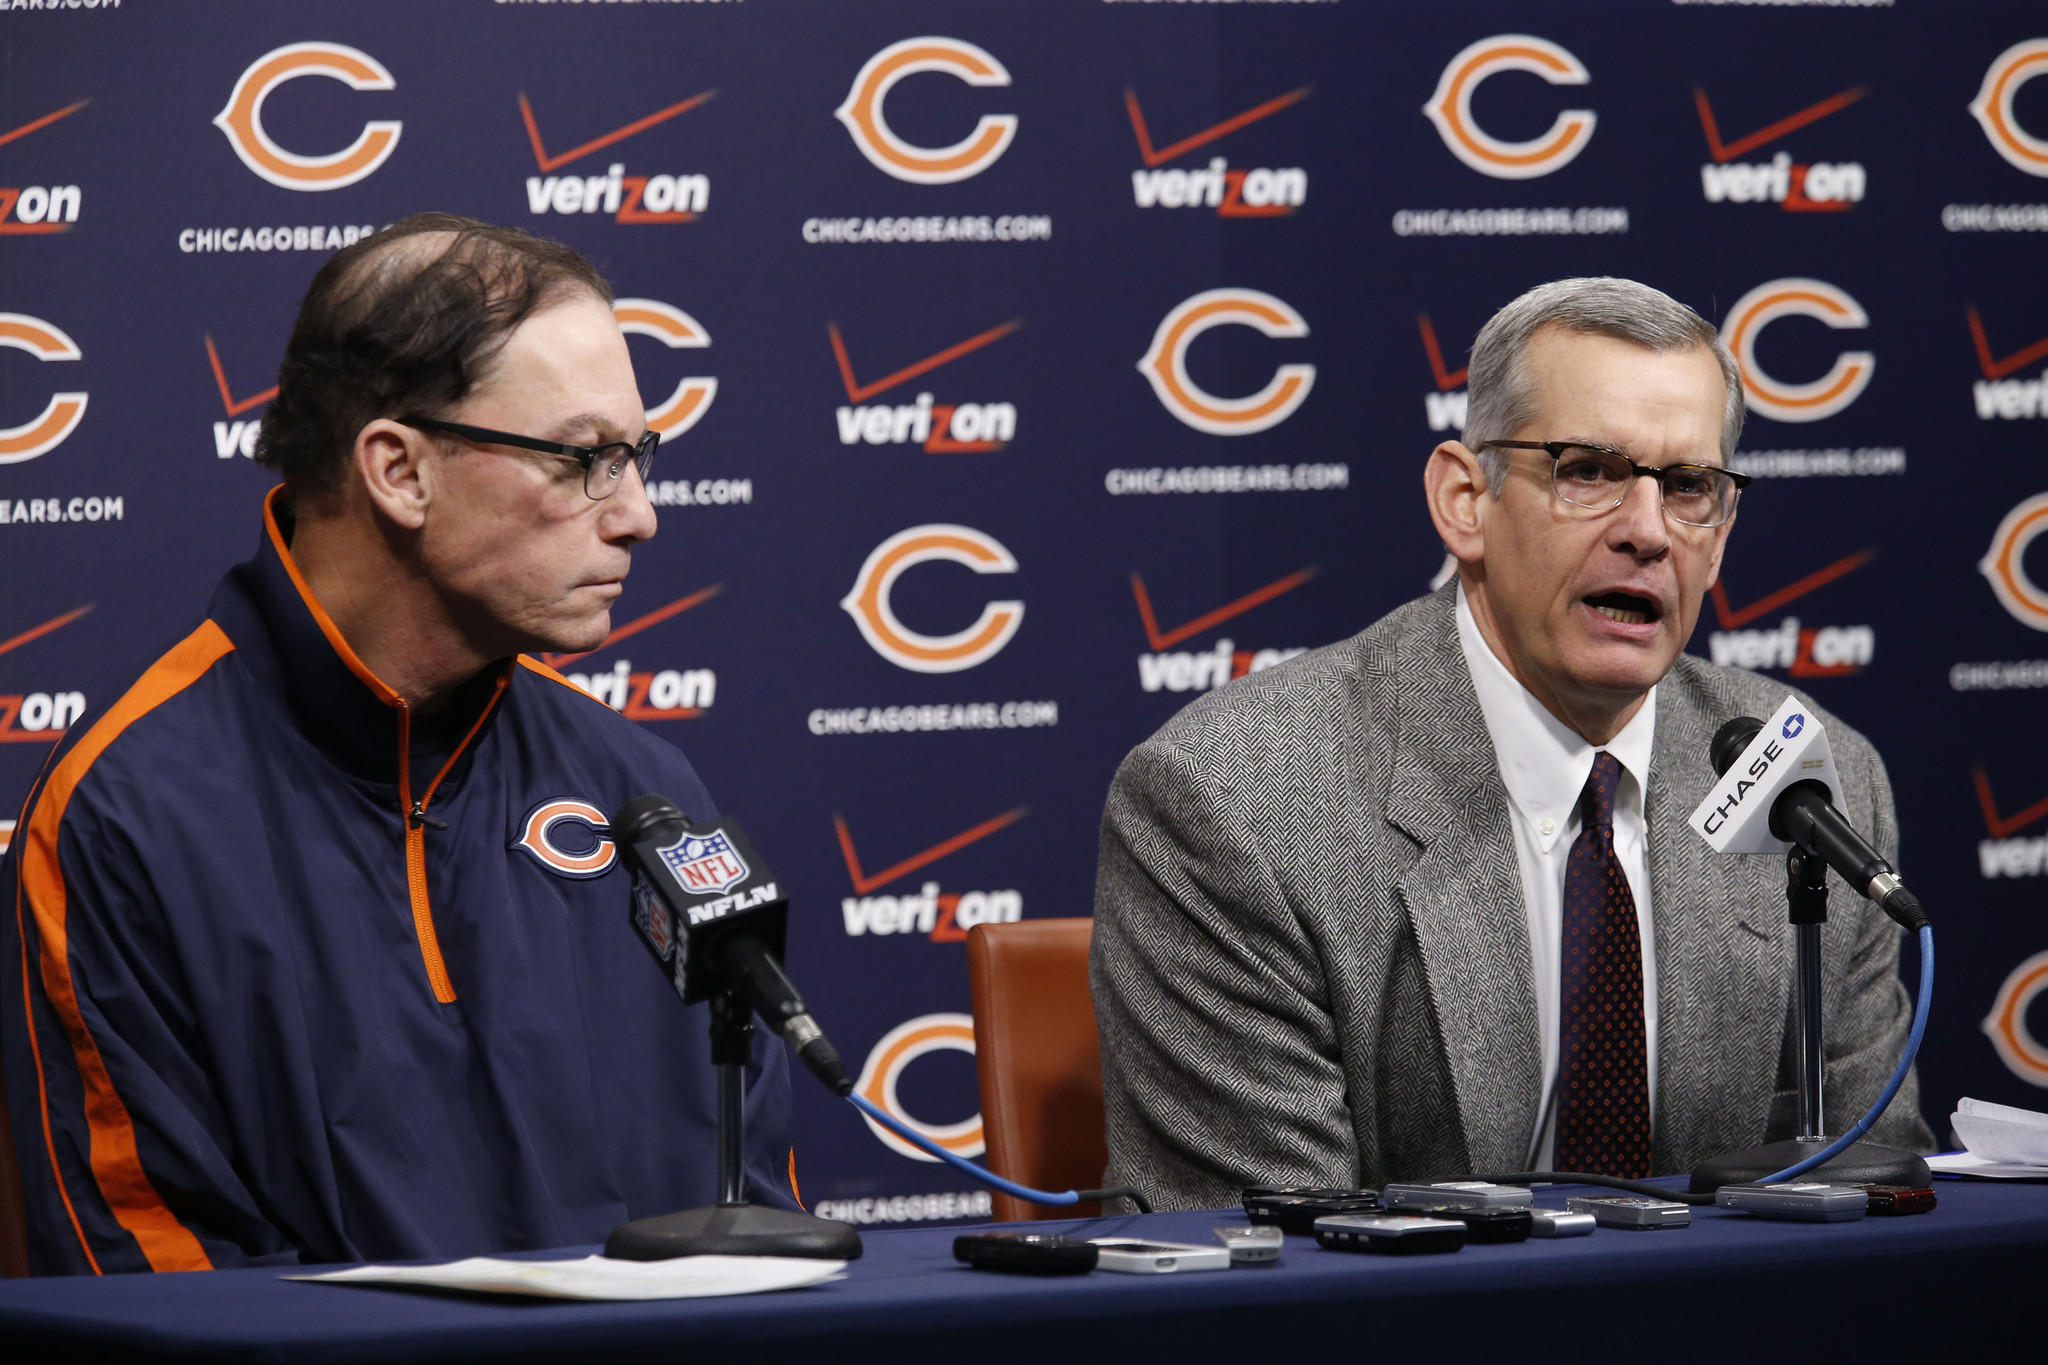 Chicago Bears head coach Marc Trestman, left, and GM Phil Emery hold a press conference at Halas Hall in Lake Forest on Thursday.